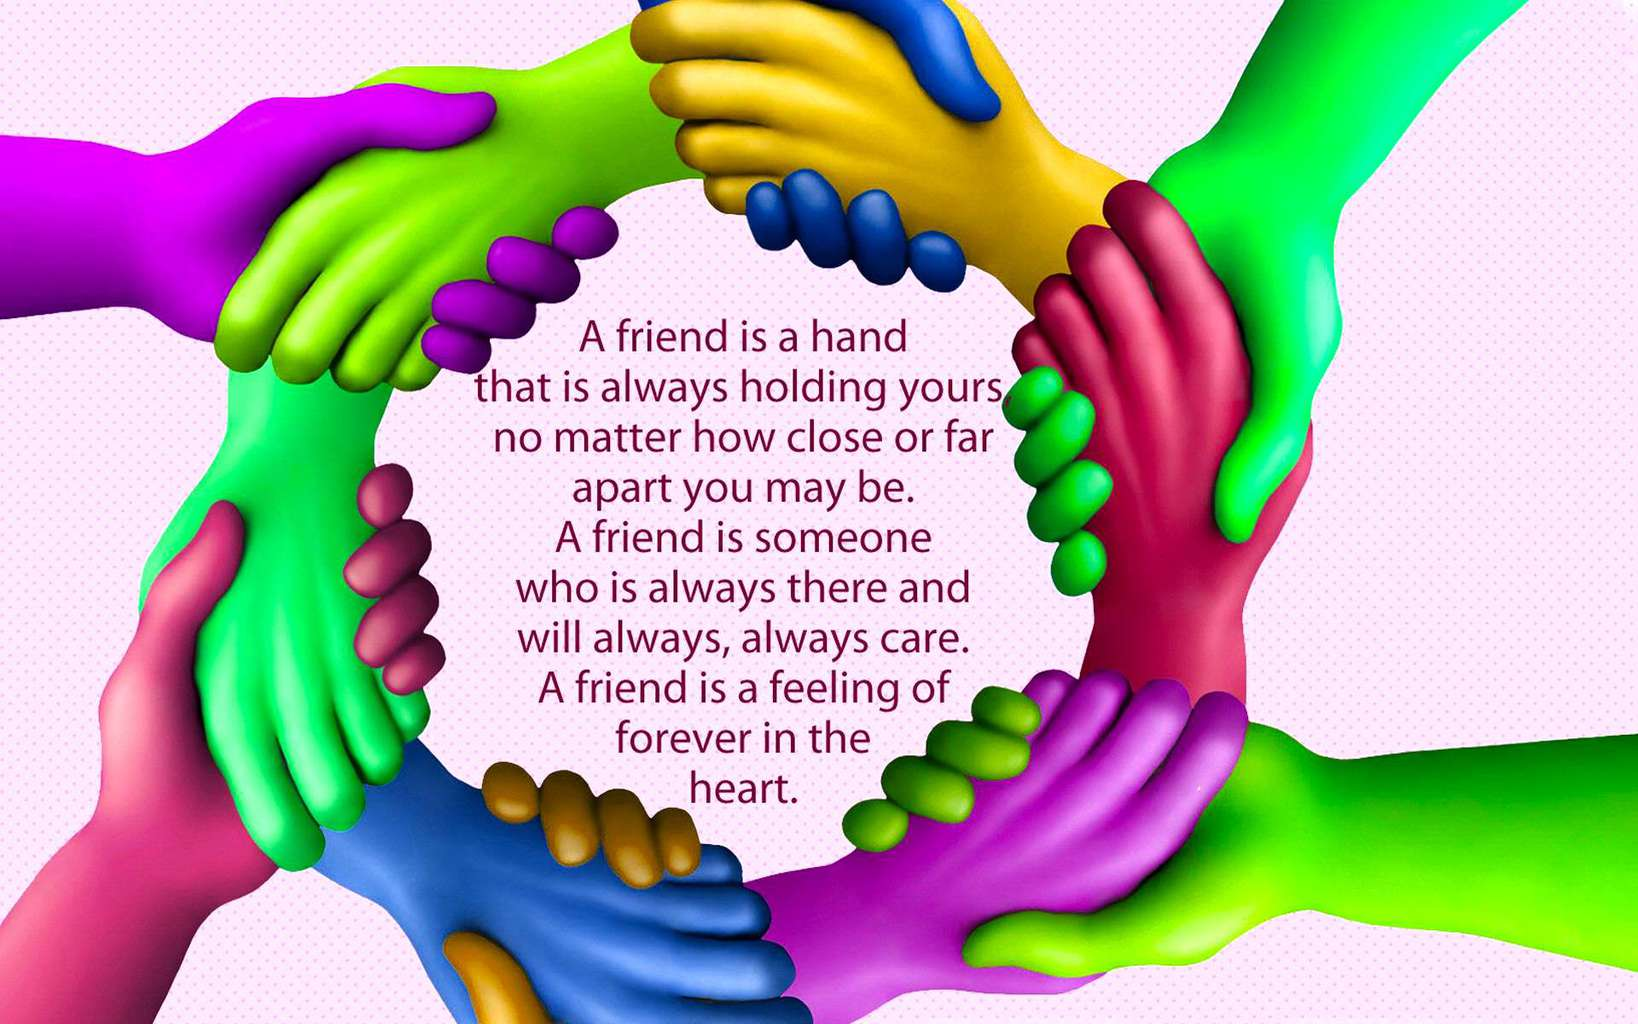 Sad Wallpapers With Quotes In English Friendship Hands Image Wallpaper